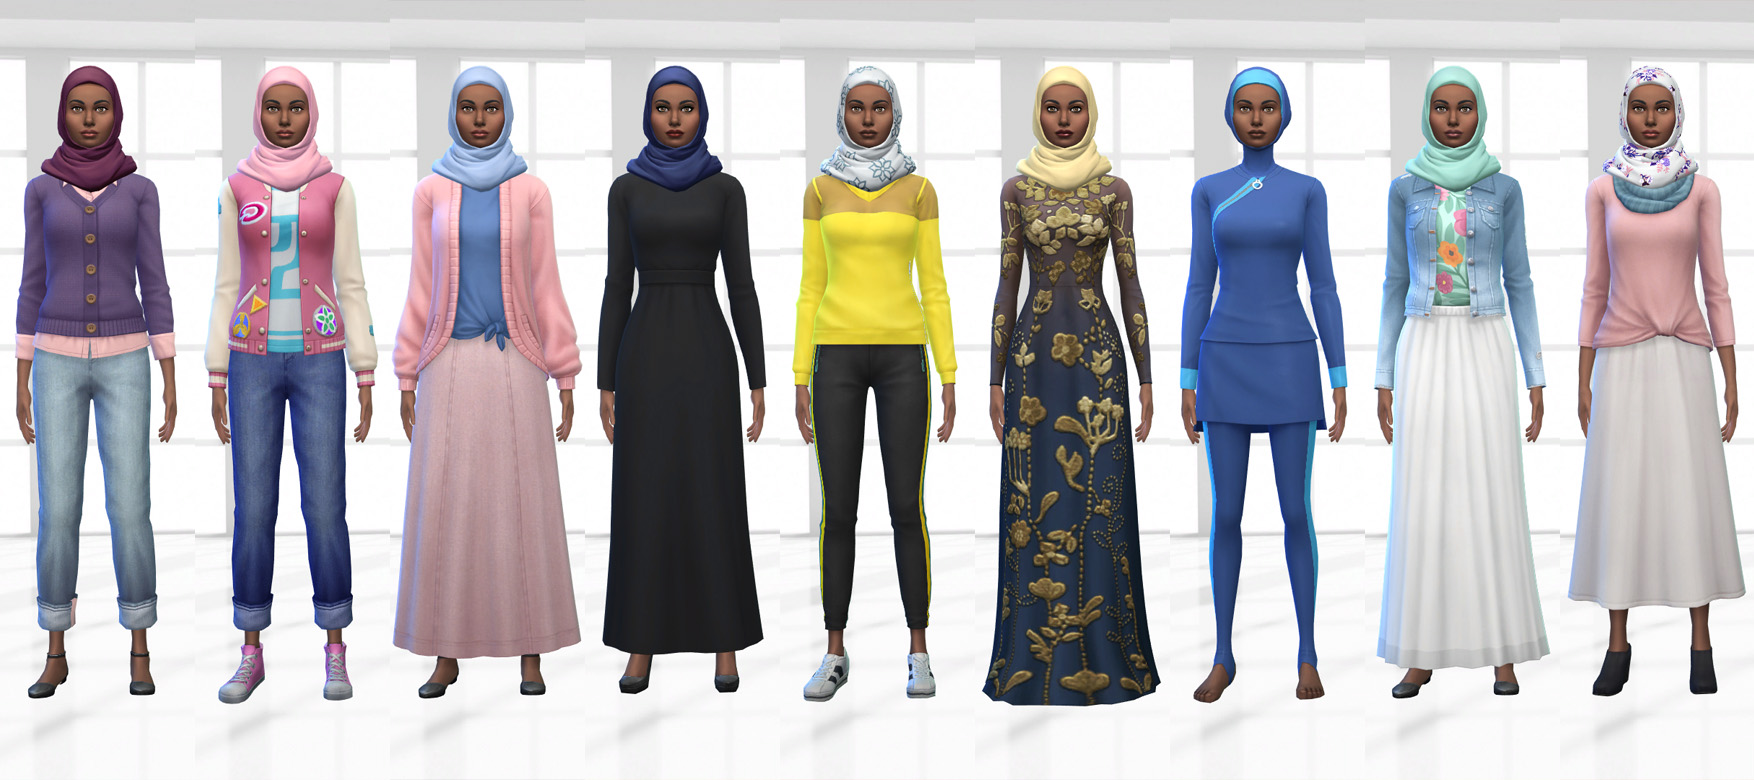 Sims 4 CC Custom Content Haul | Hijabi University Student Lookbook | Desire Anne Gaming